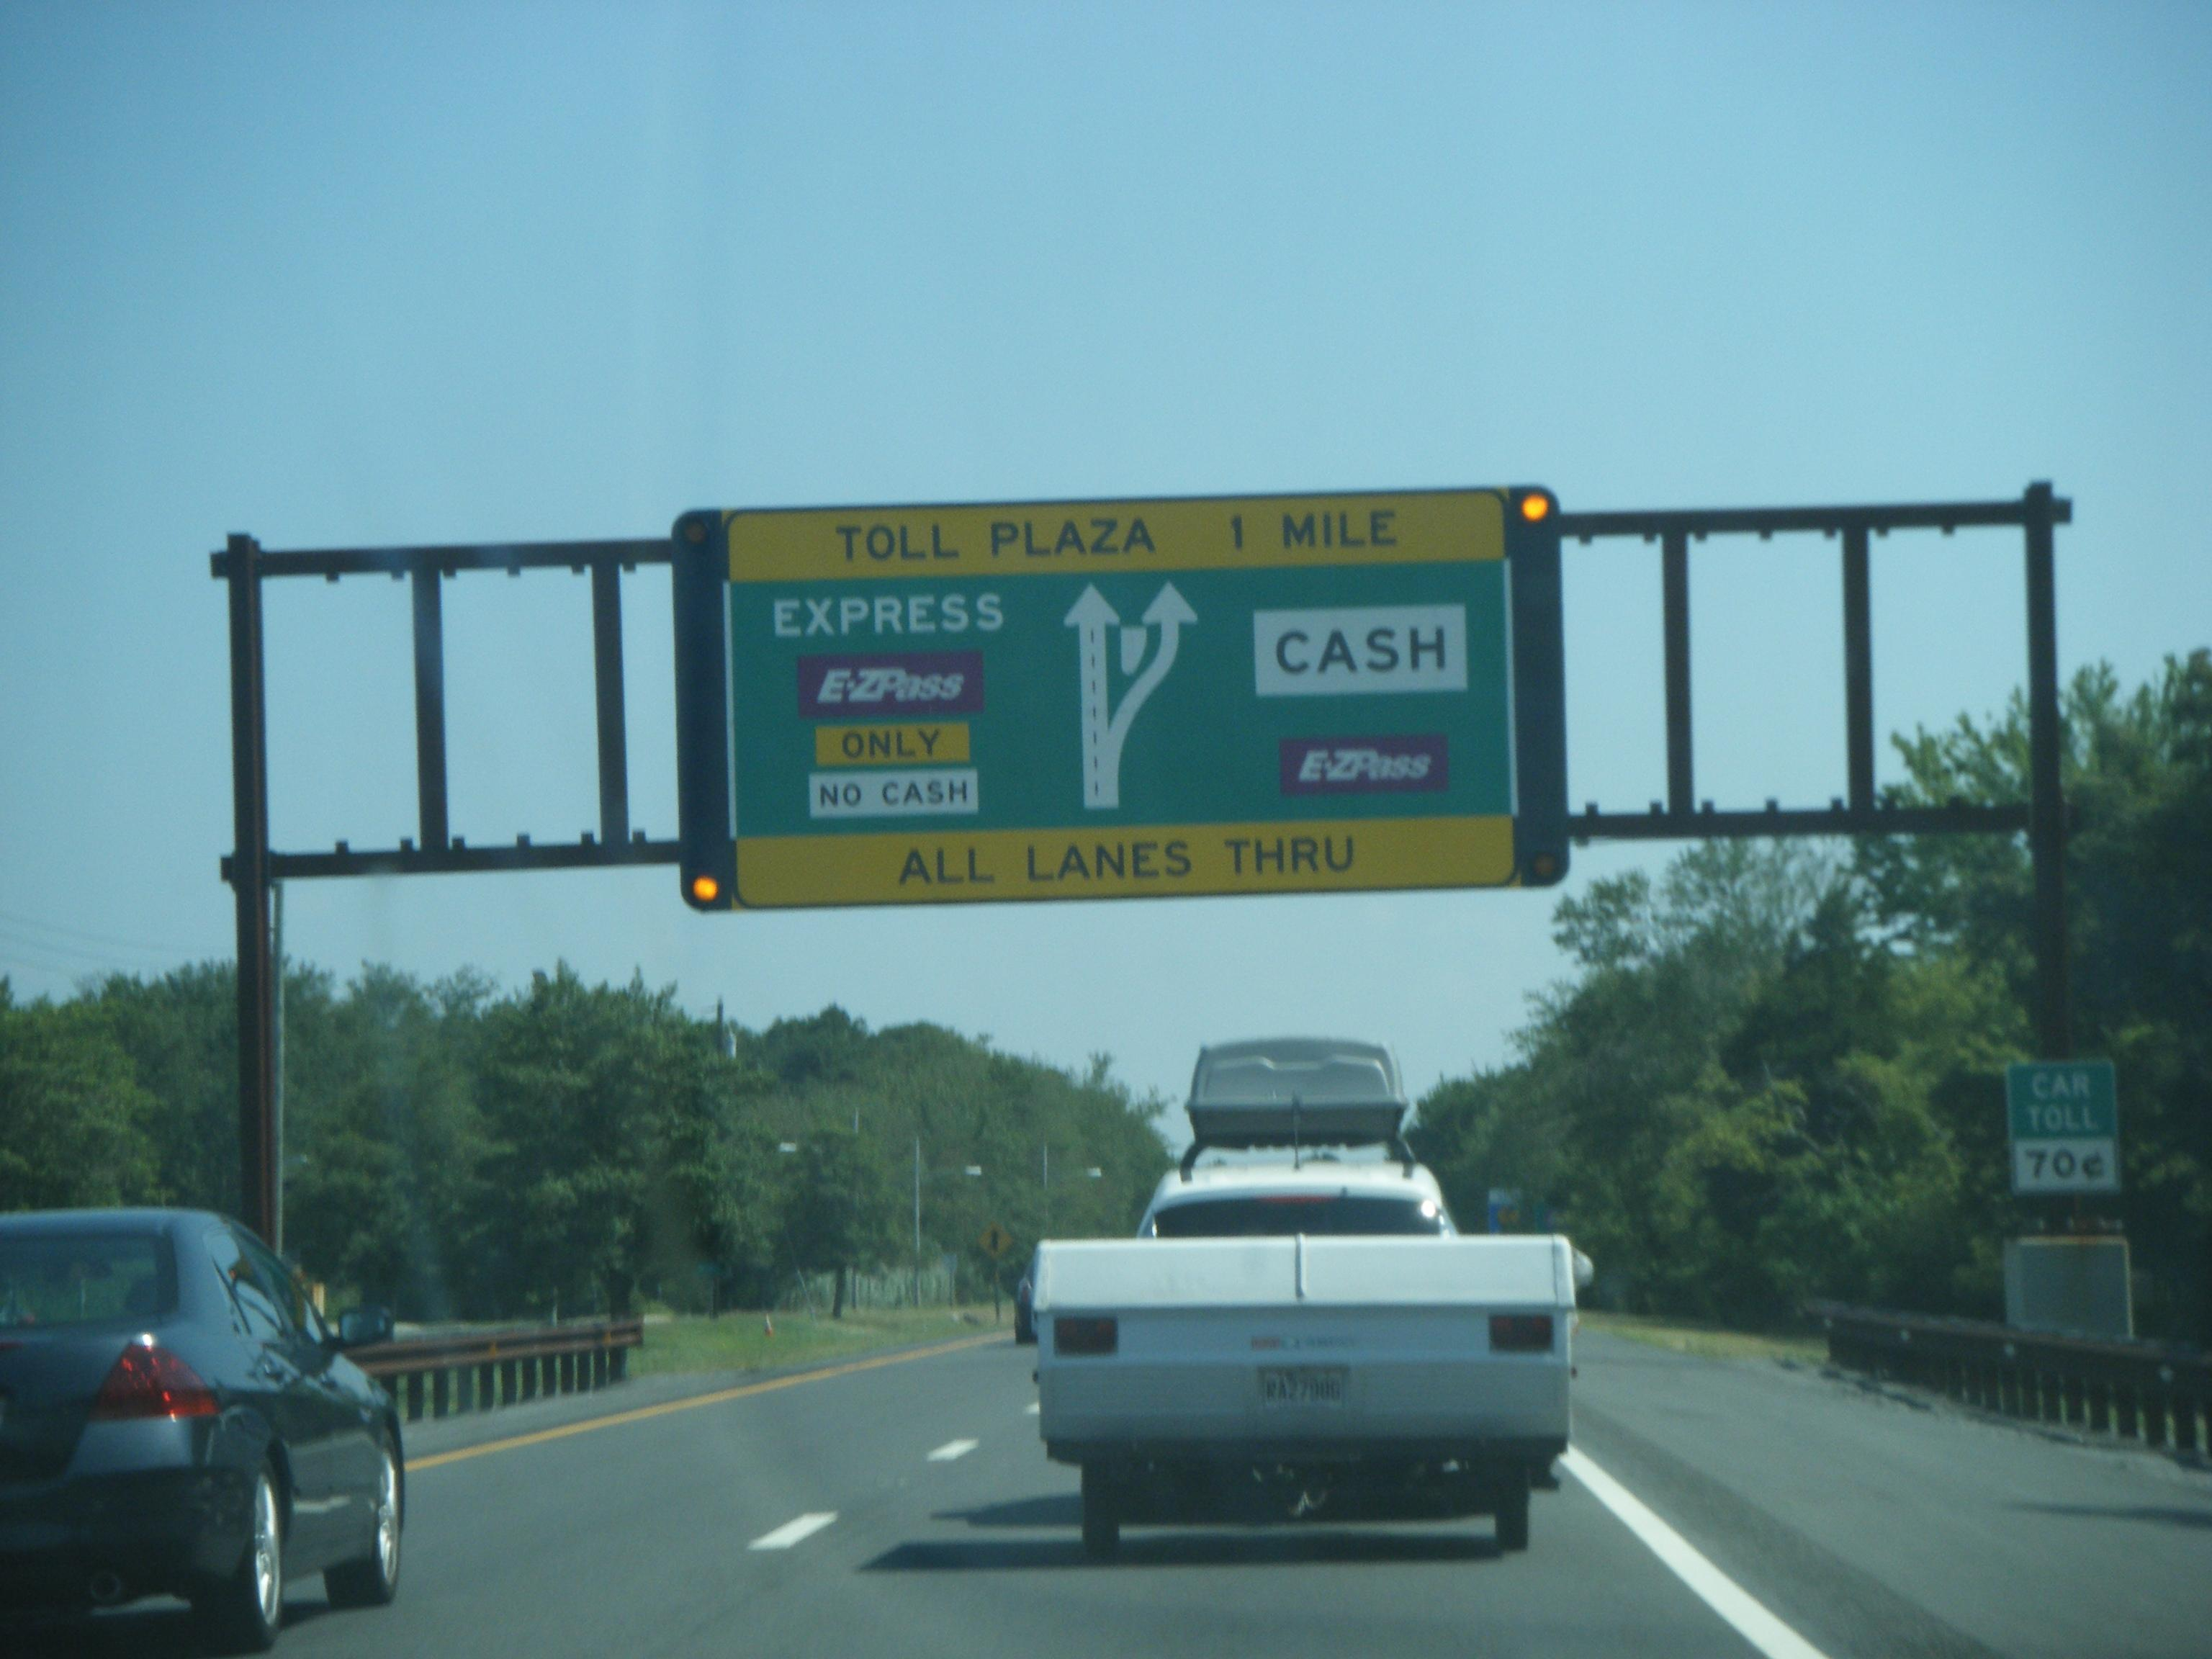 File Gsp Nb 1 Mi To Cape May Toll Plaza Jpg